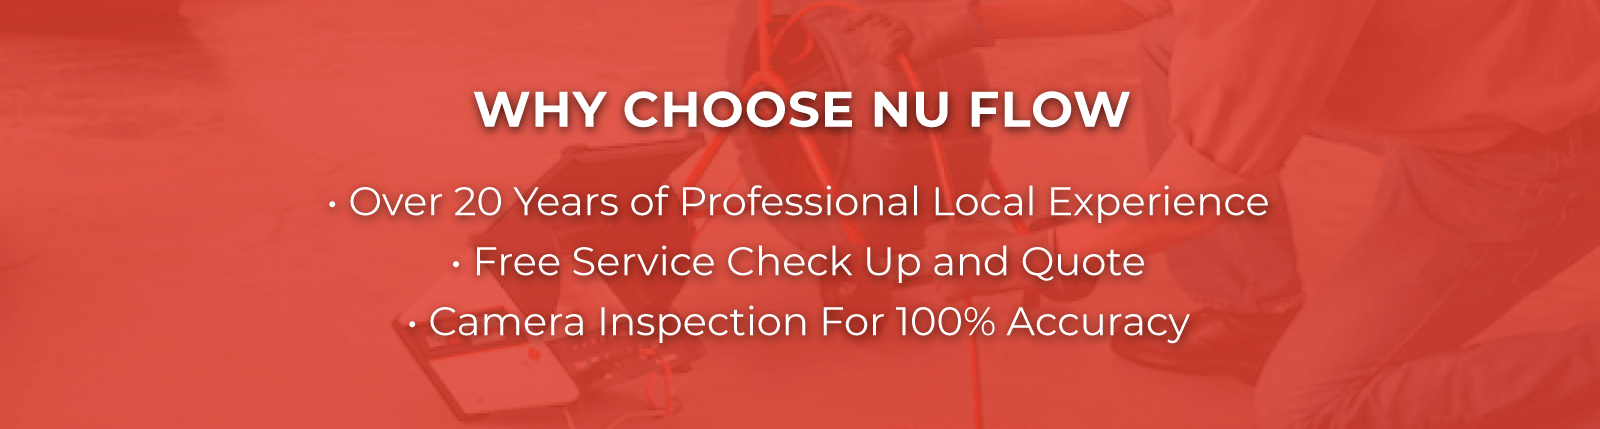 nu flow oklahoma sewer repair 1 Drain Cleaning in Mustang, OK